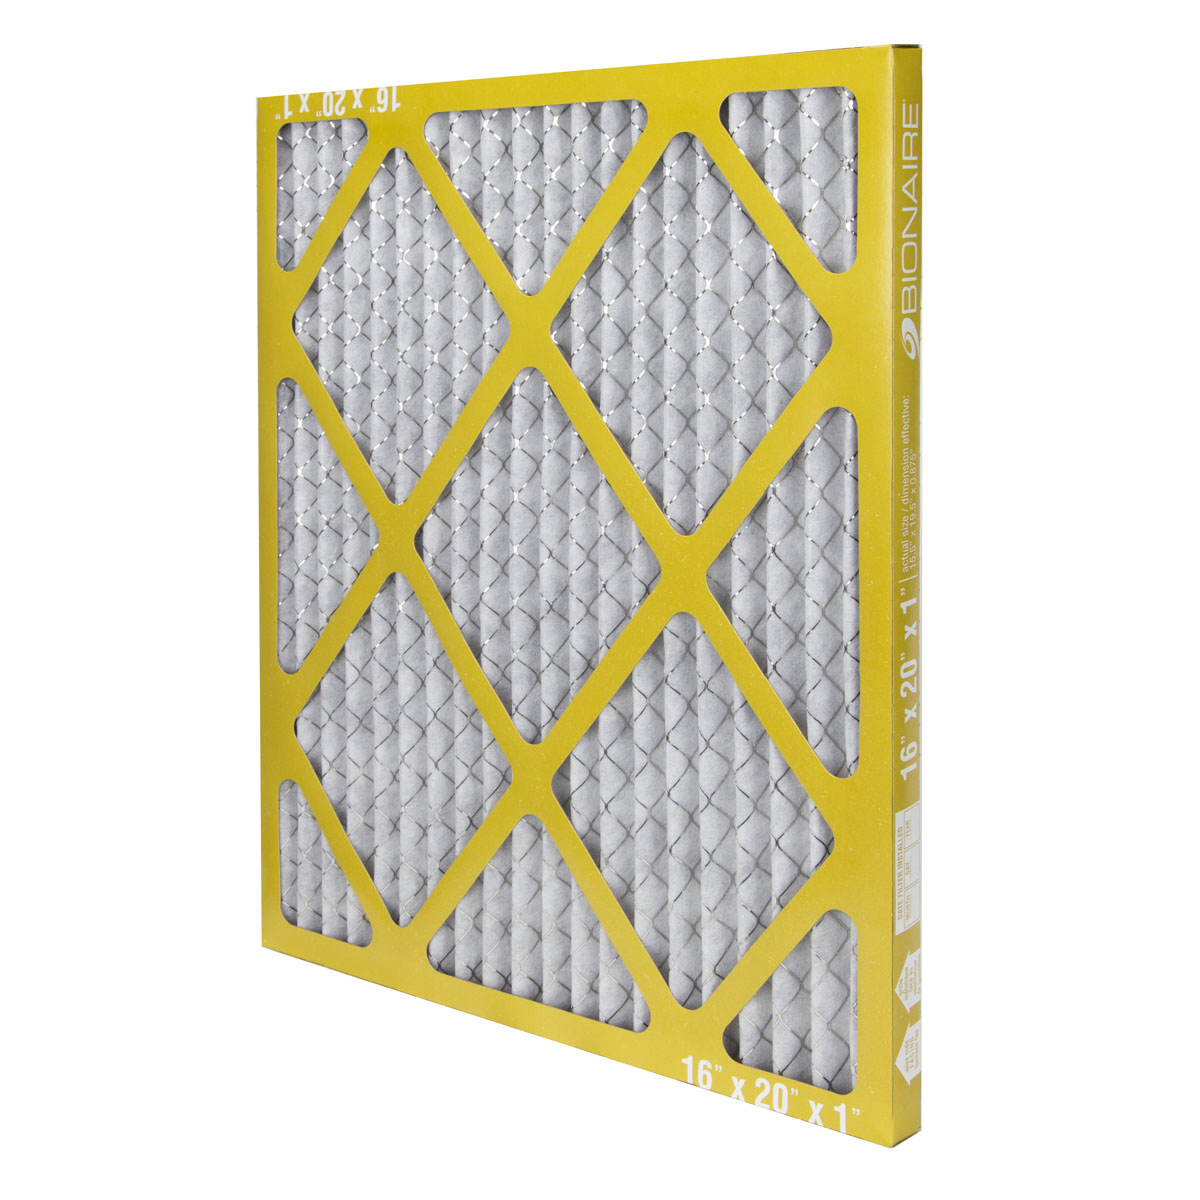 Bionaire® Odour Reduction MERV 11 Furnace Filter 16x20 4 Pack  #A89423